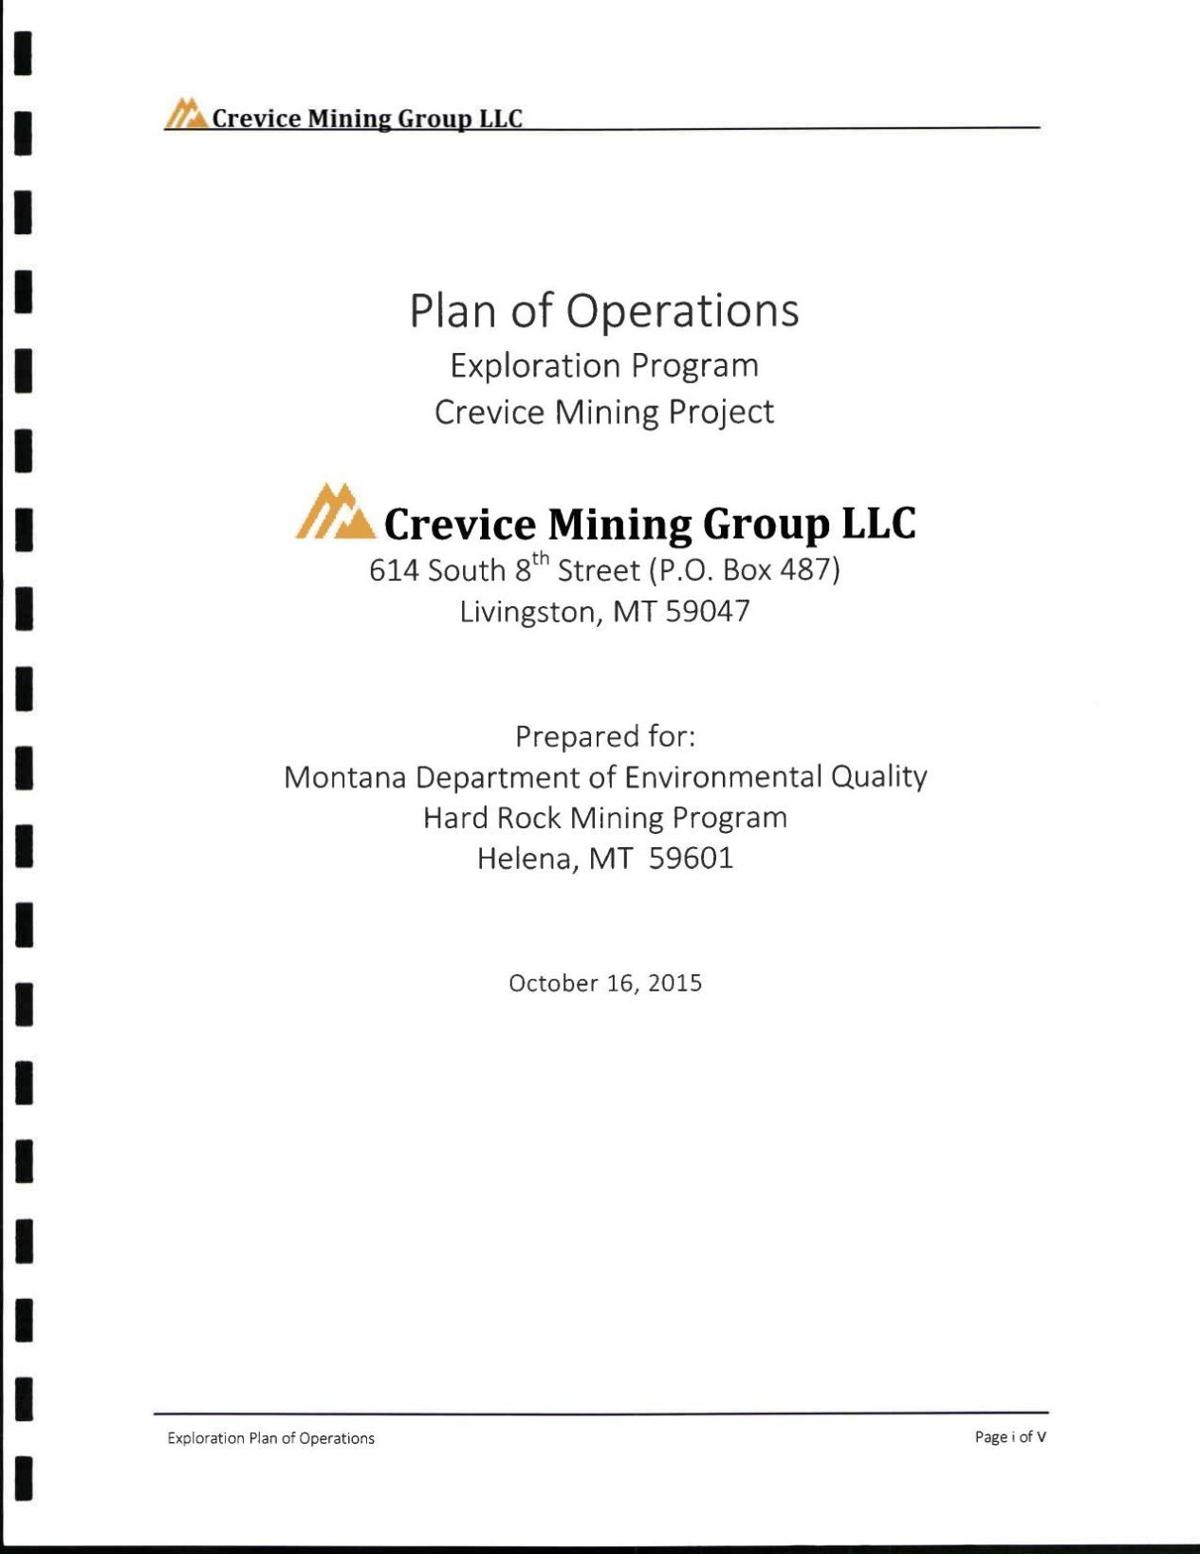 Crevice Mining plan of operations